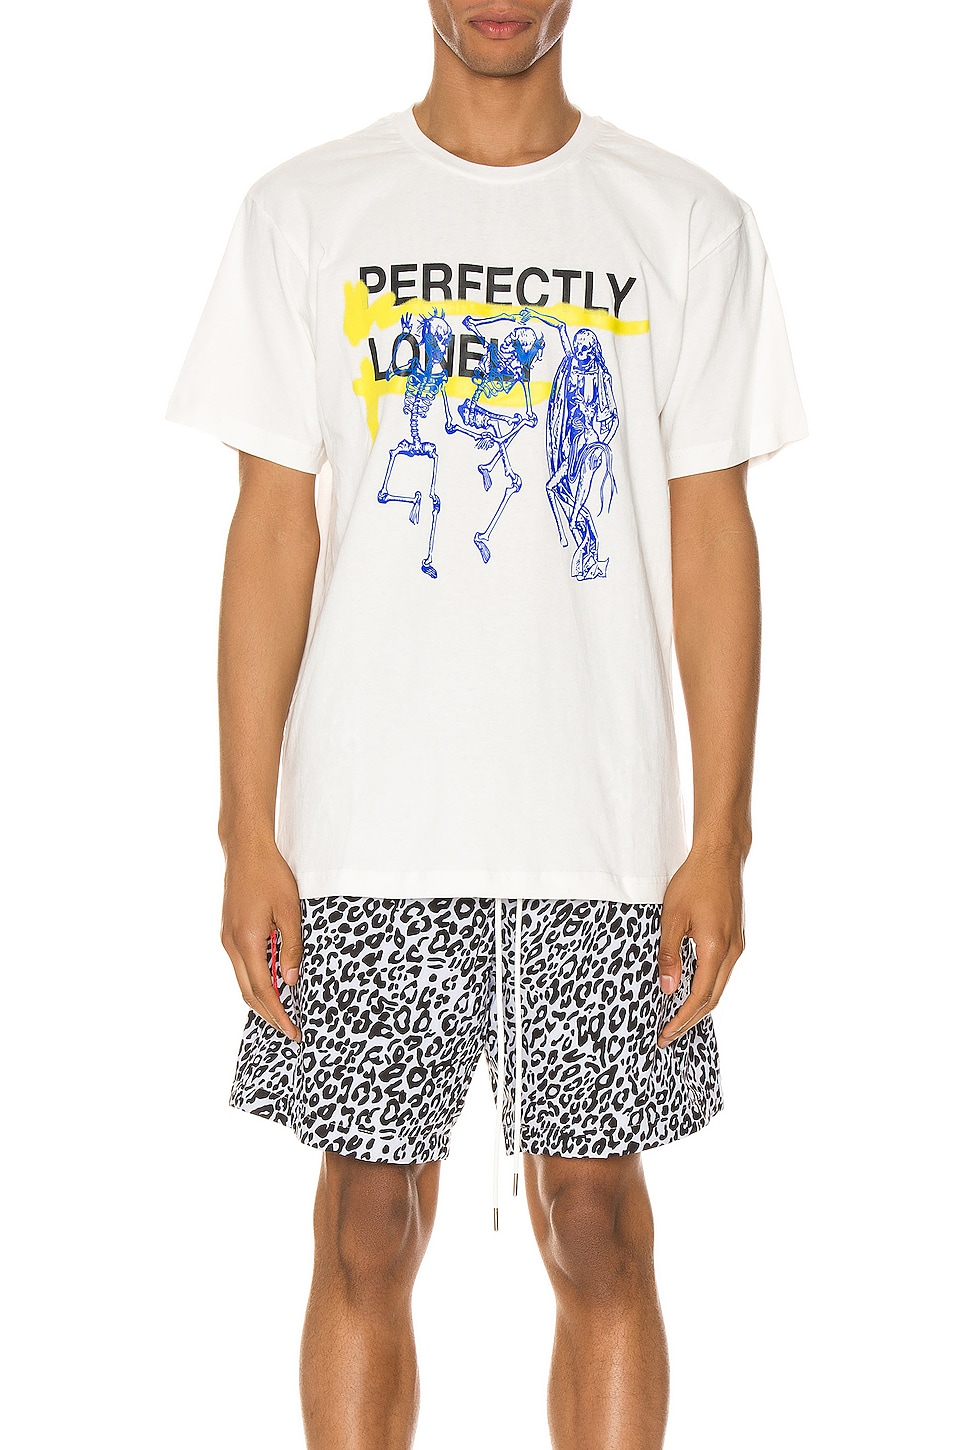 Lifted Anchors T-SHIRT GRAPHIQUE LONELY